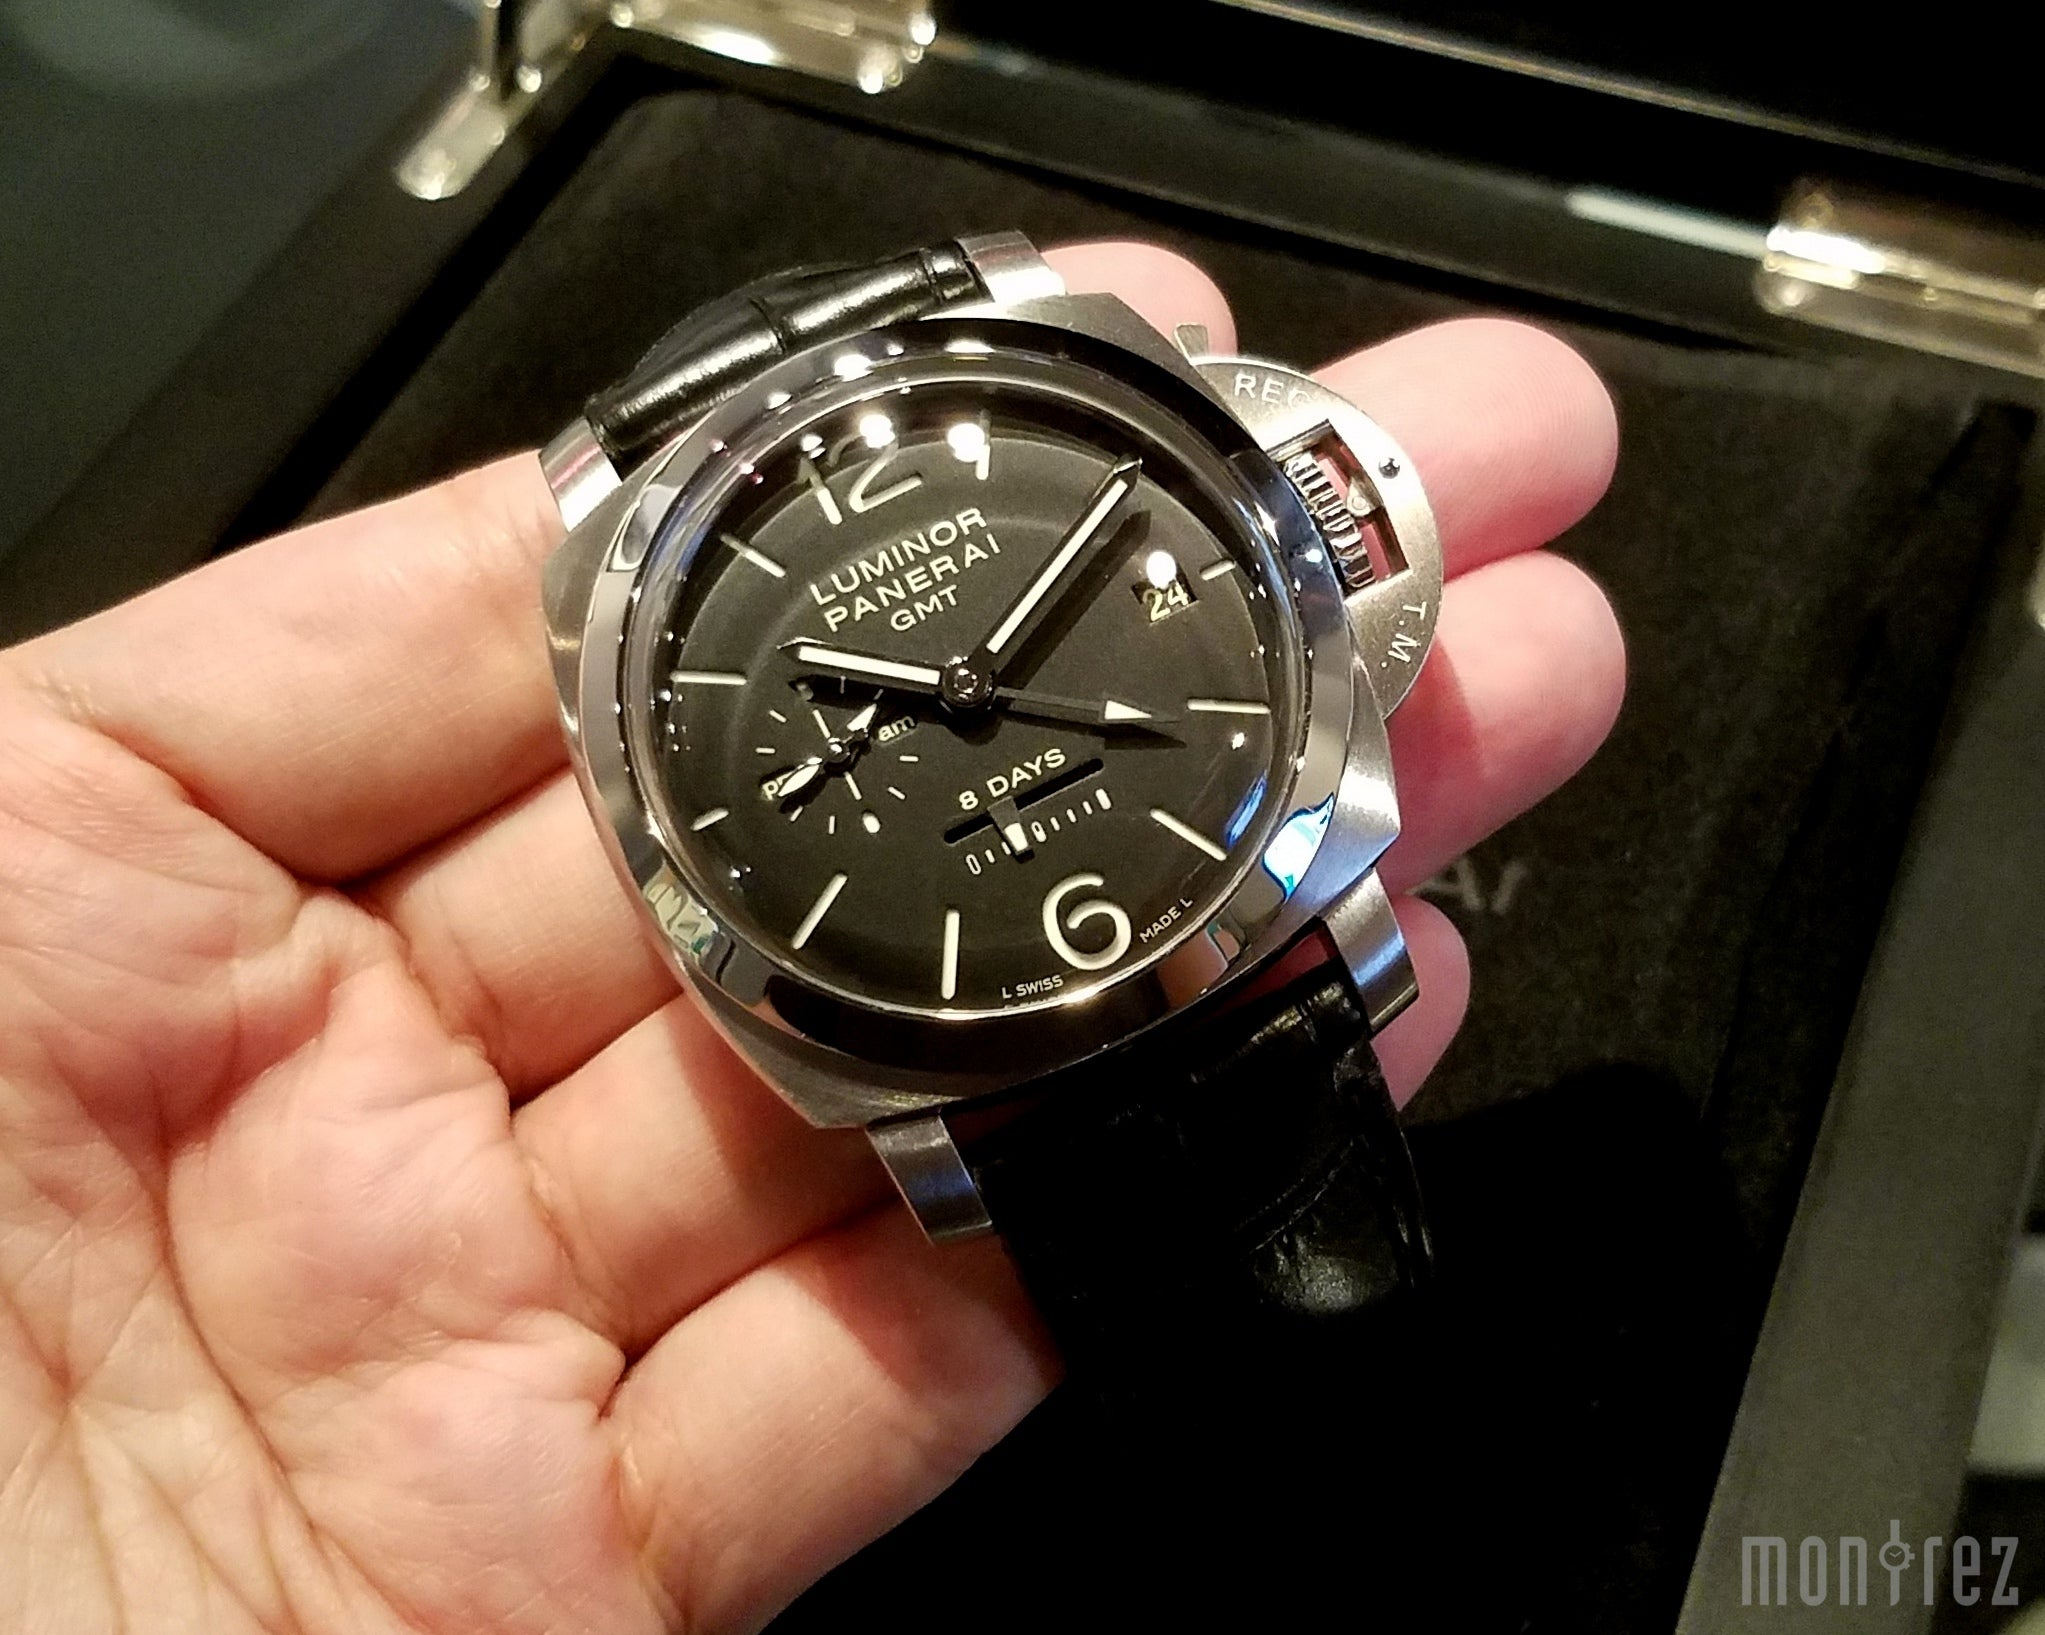 Panerai Luminor 1950 8 Days GMT Acciaio 44mm PAM00233